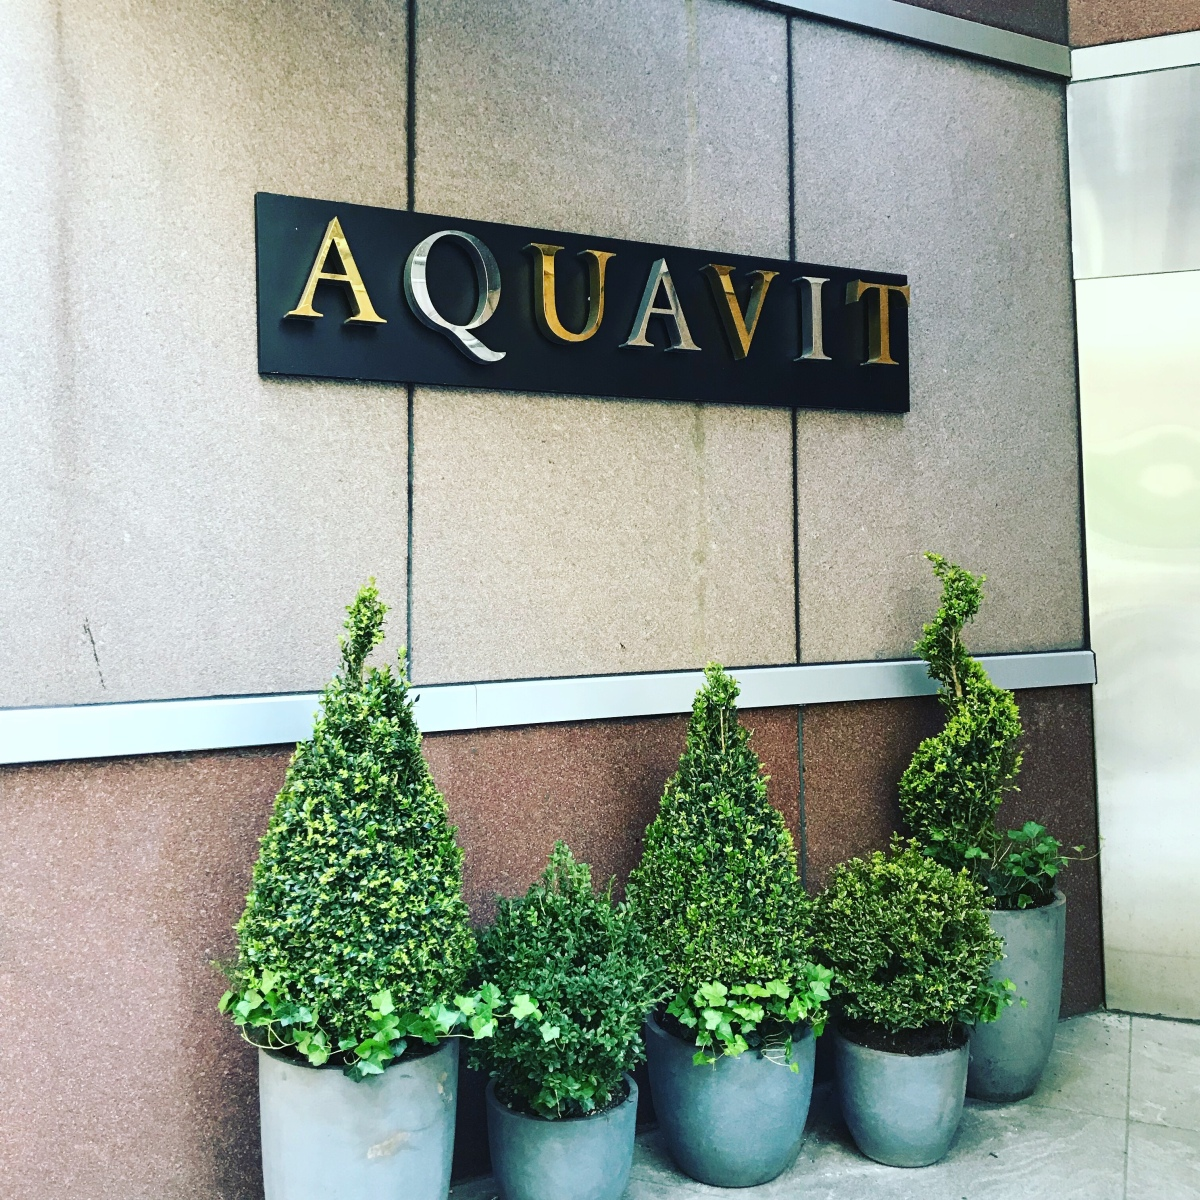 Restaurant review: Aquavit, NYC